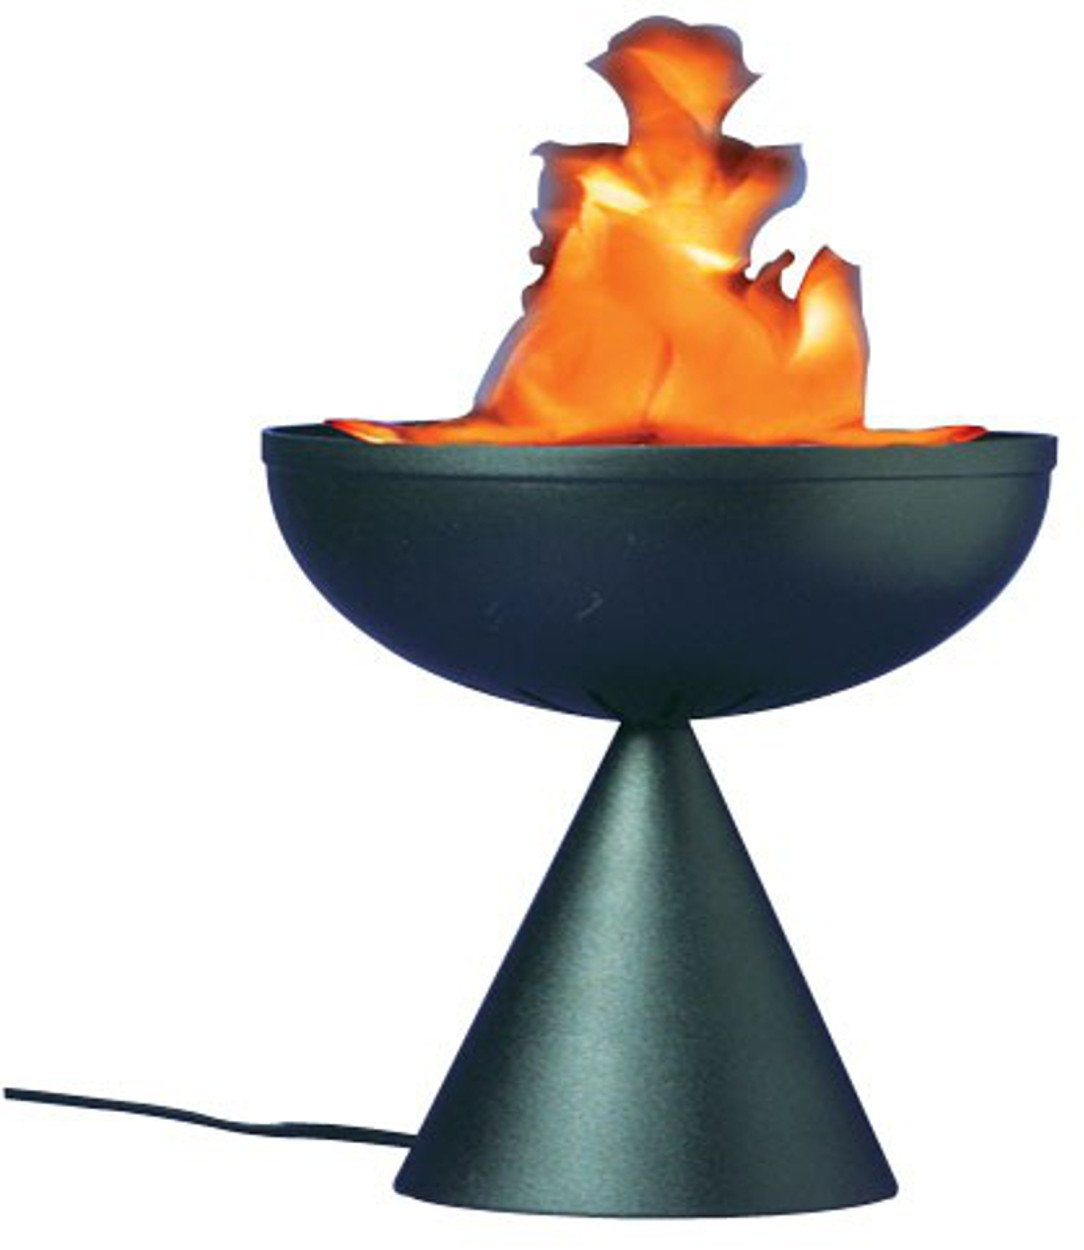 Table Top Flame Lamp Halloween Prop (B303)   Flame Light Table Top    Amazon.com